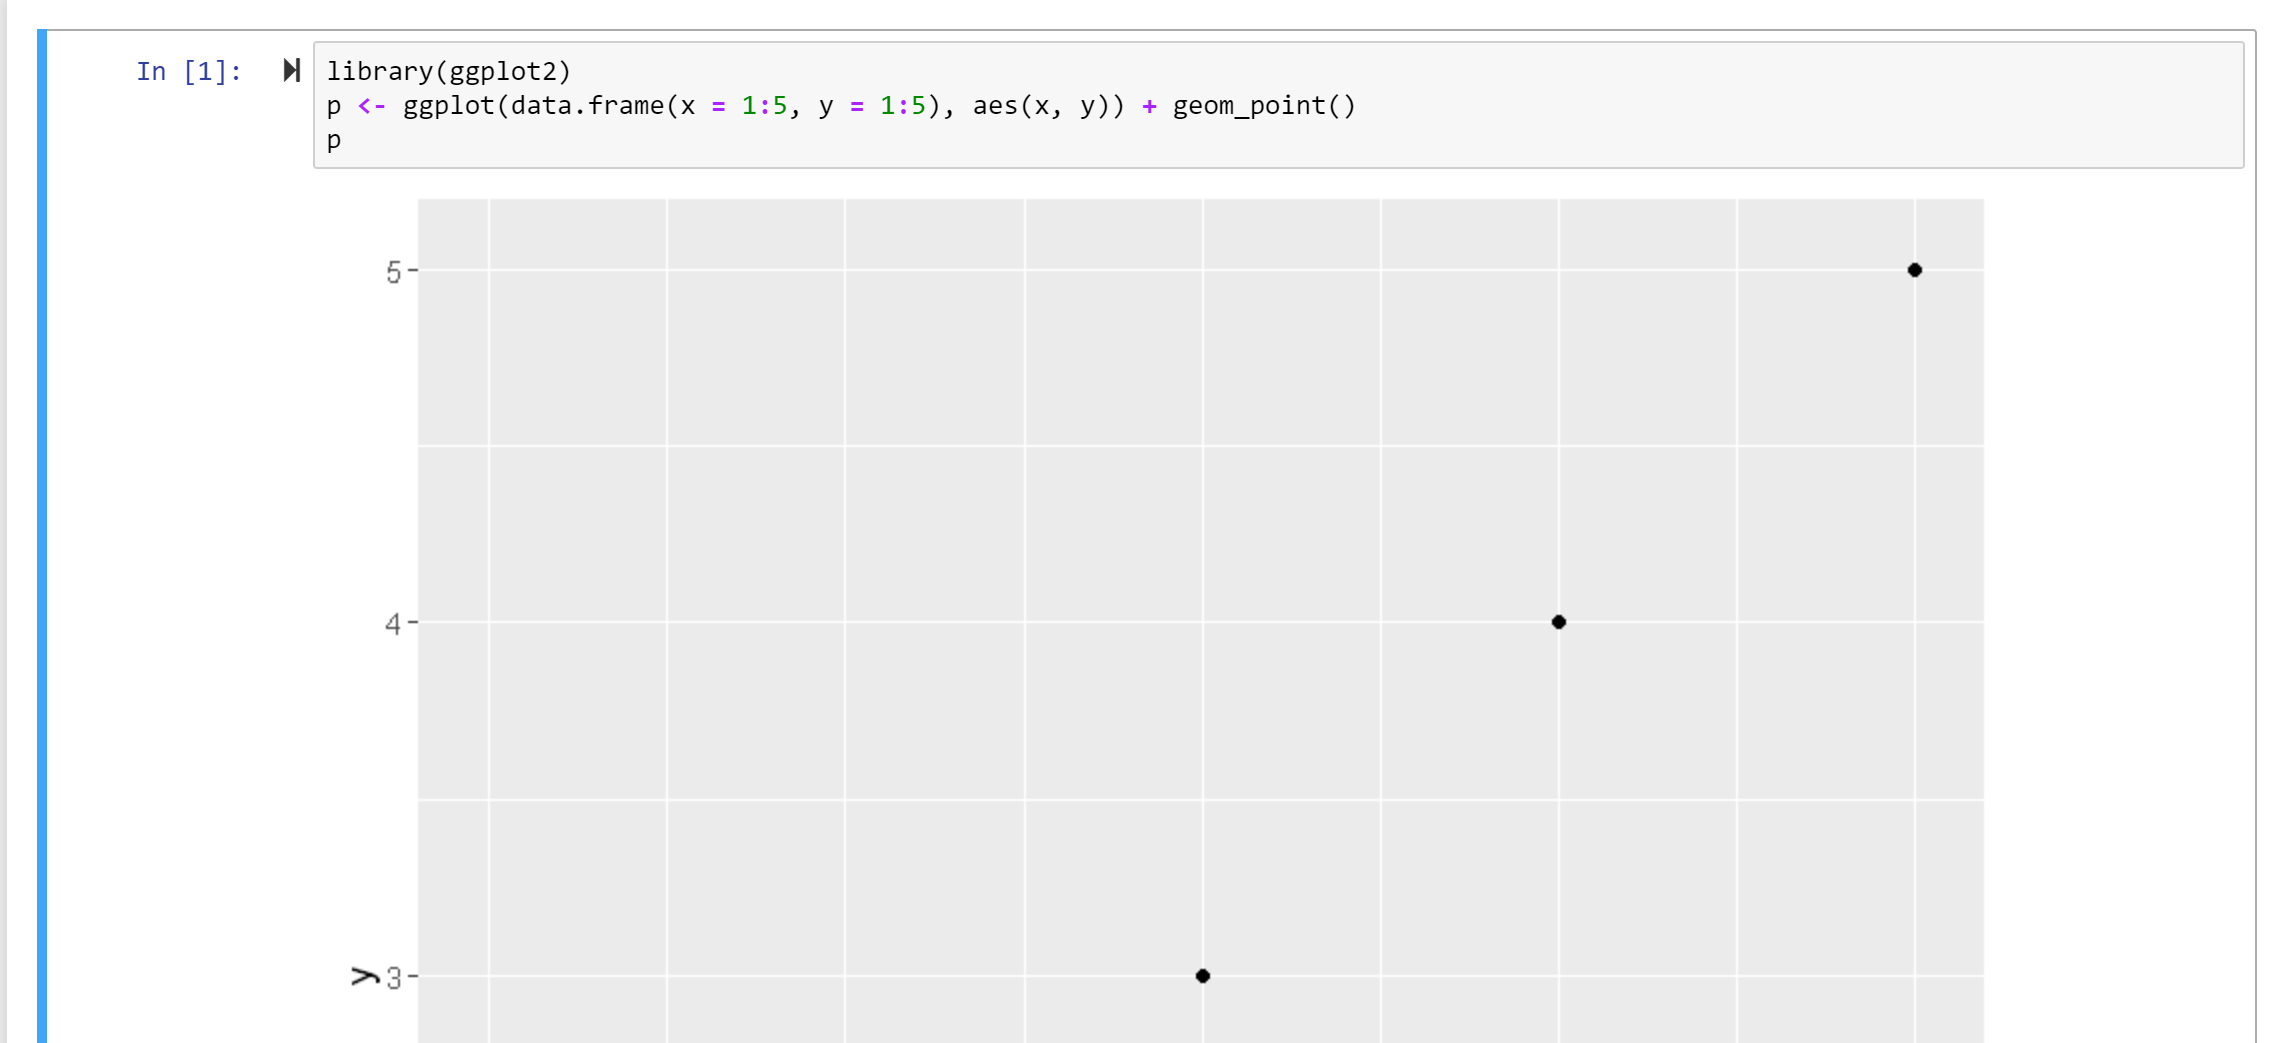 Problems with Plotting in jupyter notebook using sparkmagic